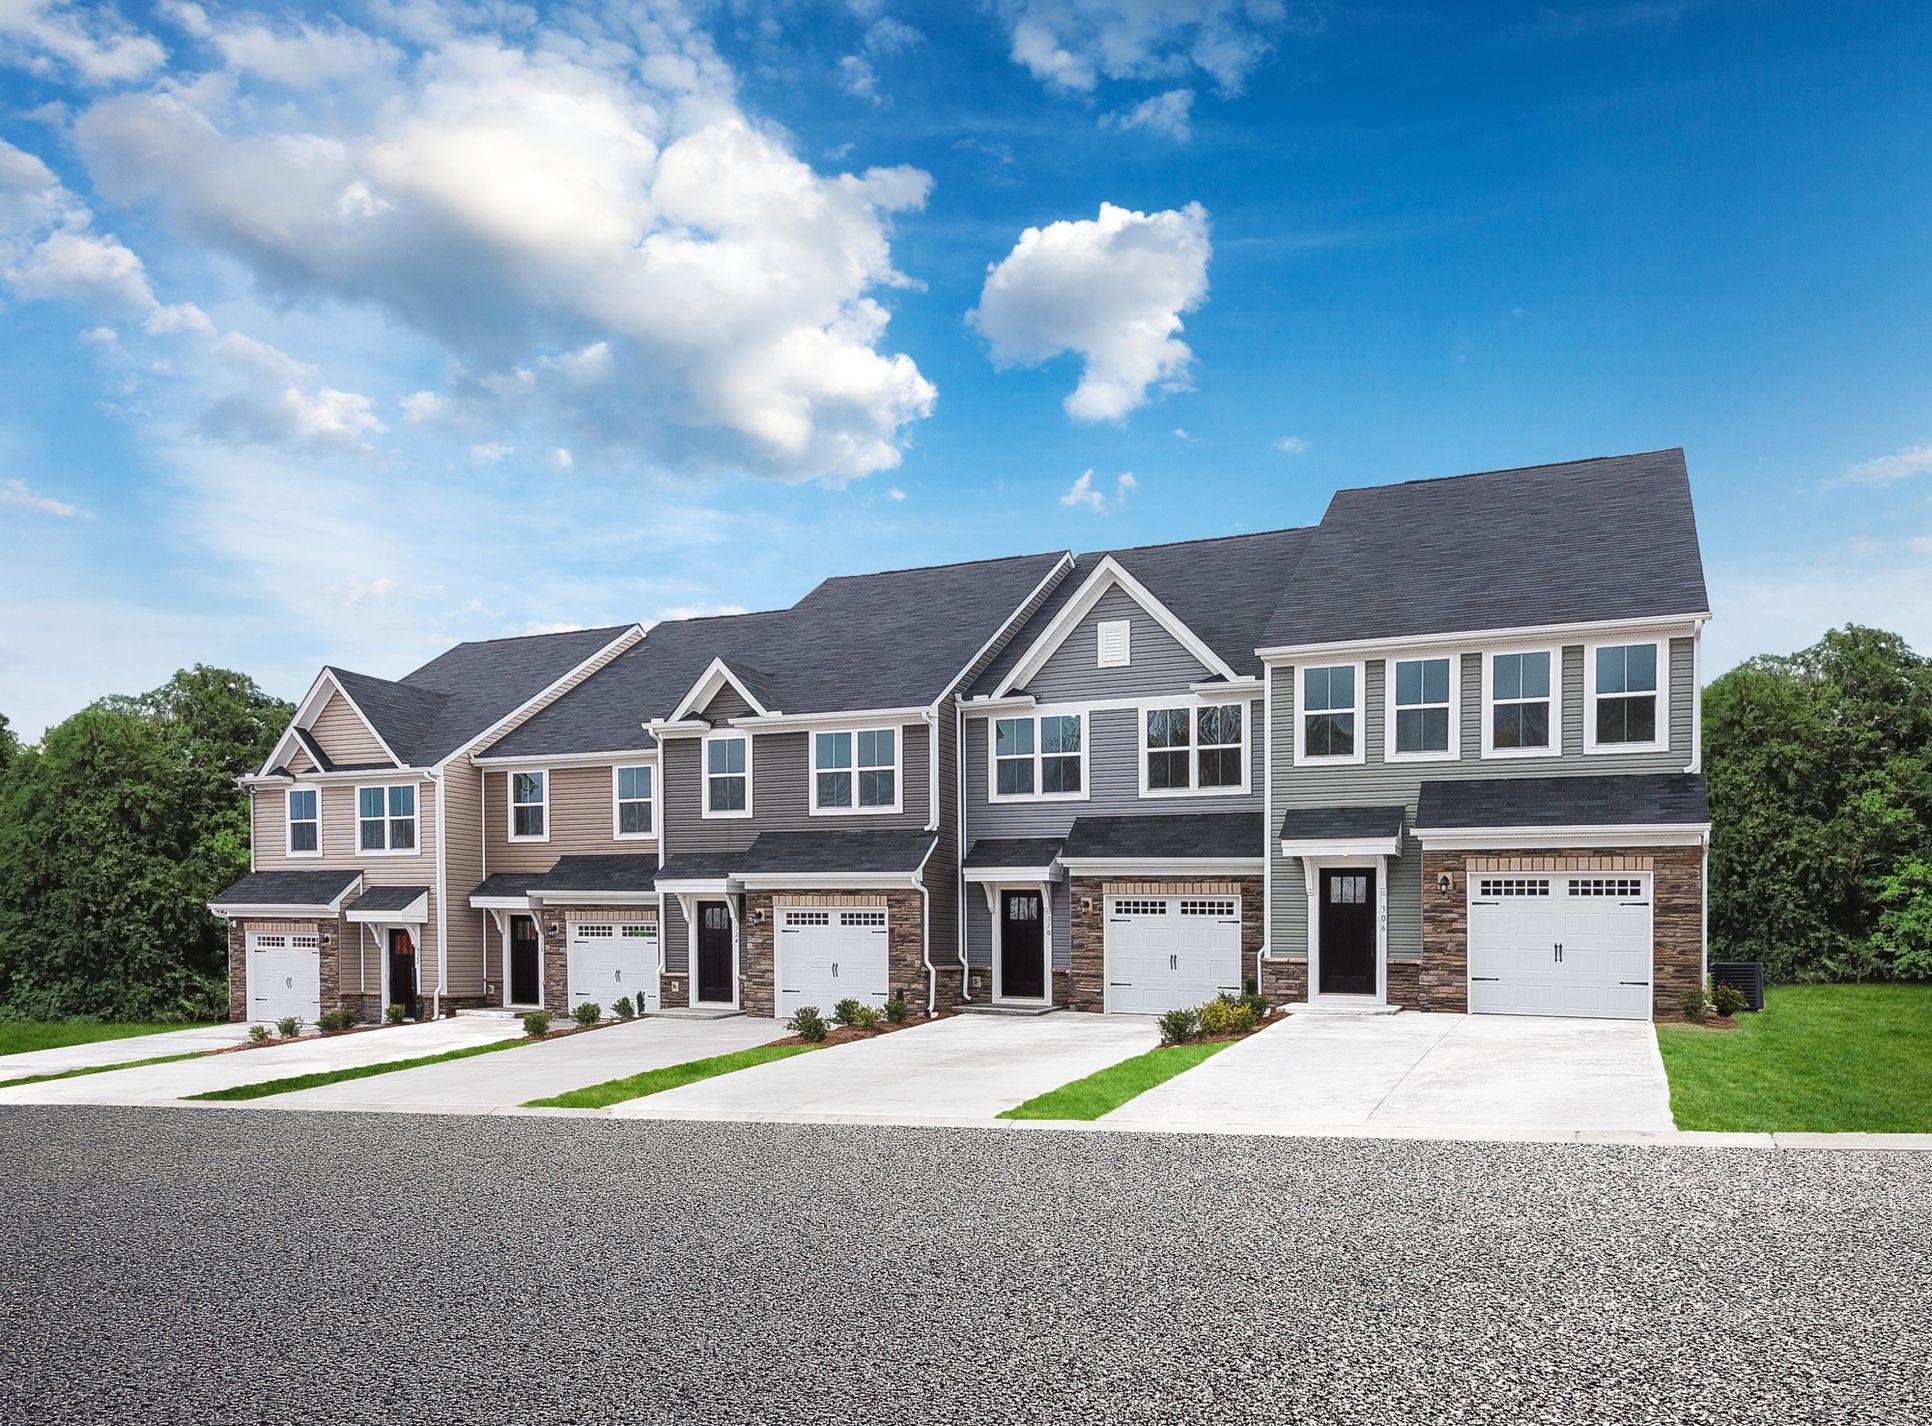 Last Chance! Only 4 Homesites left!:Highly sought after townhomes, Luxury Finishes, Amenity rich, Starting in the Upper $200s! Convenient to Williamsburg and I-64.Click here to visit.